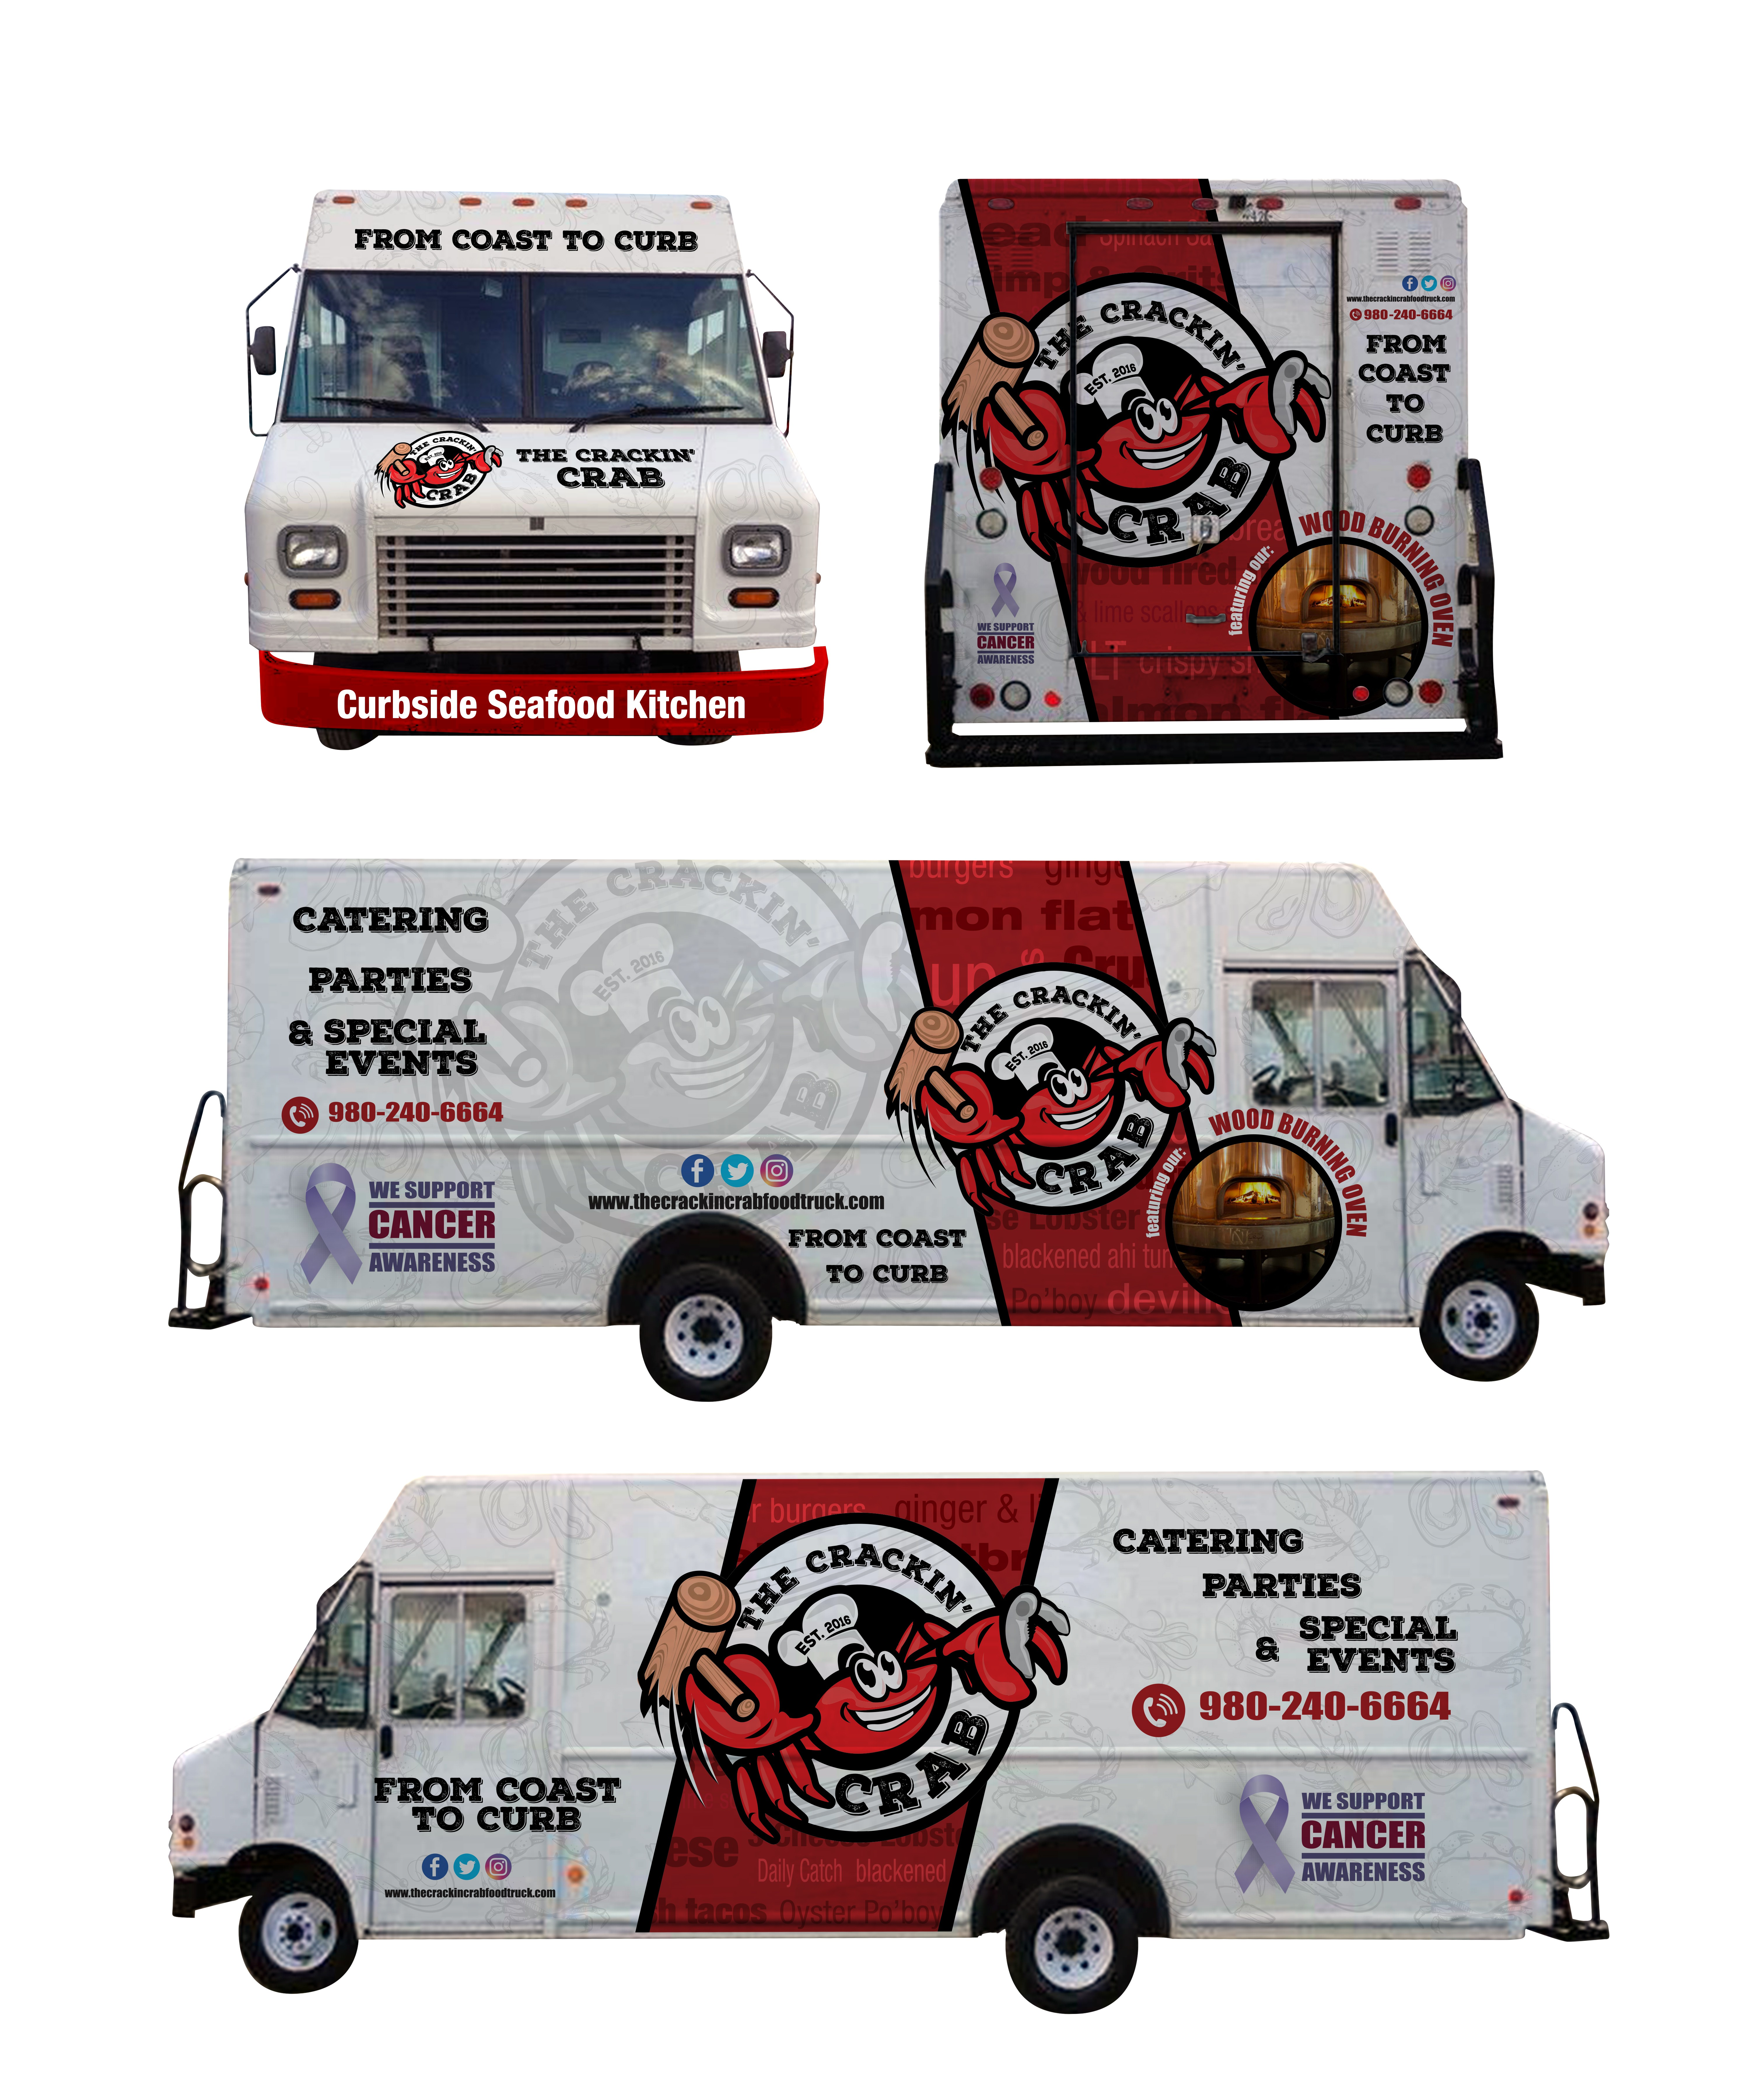 The Crackin Crab food truck is in need of a badass logo and truck wrap design